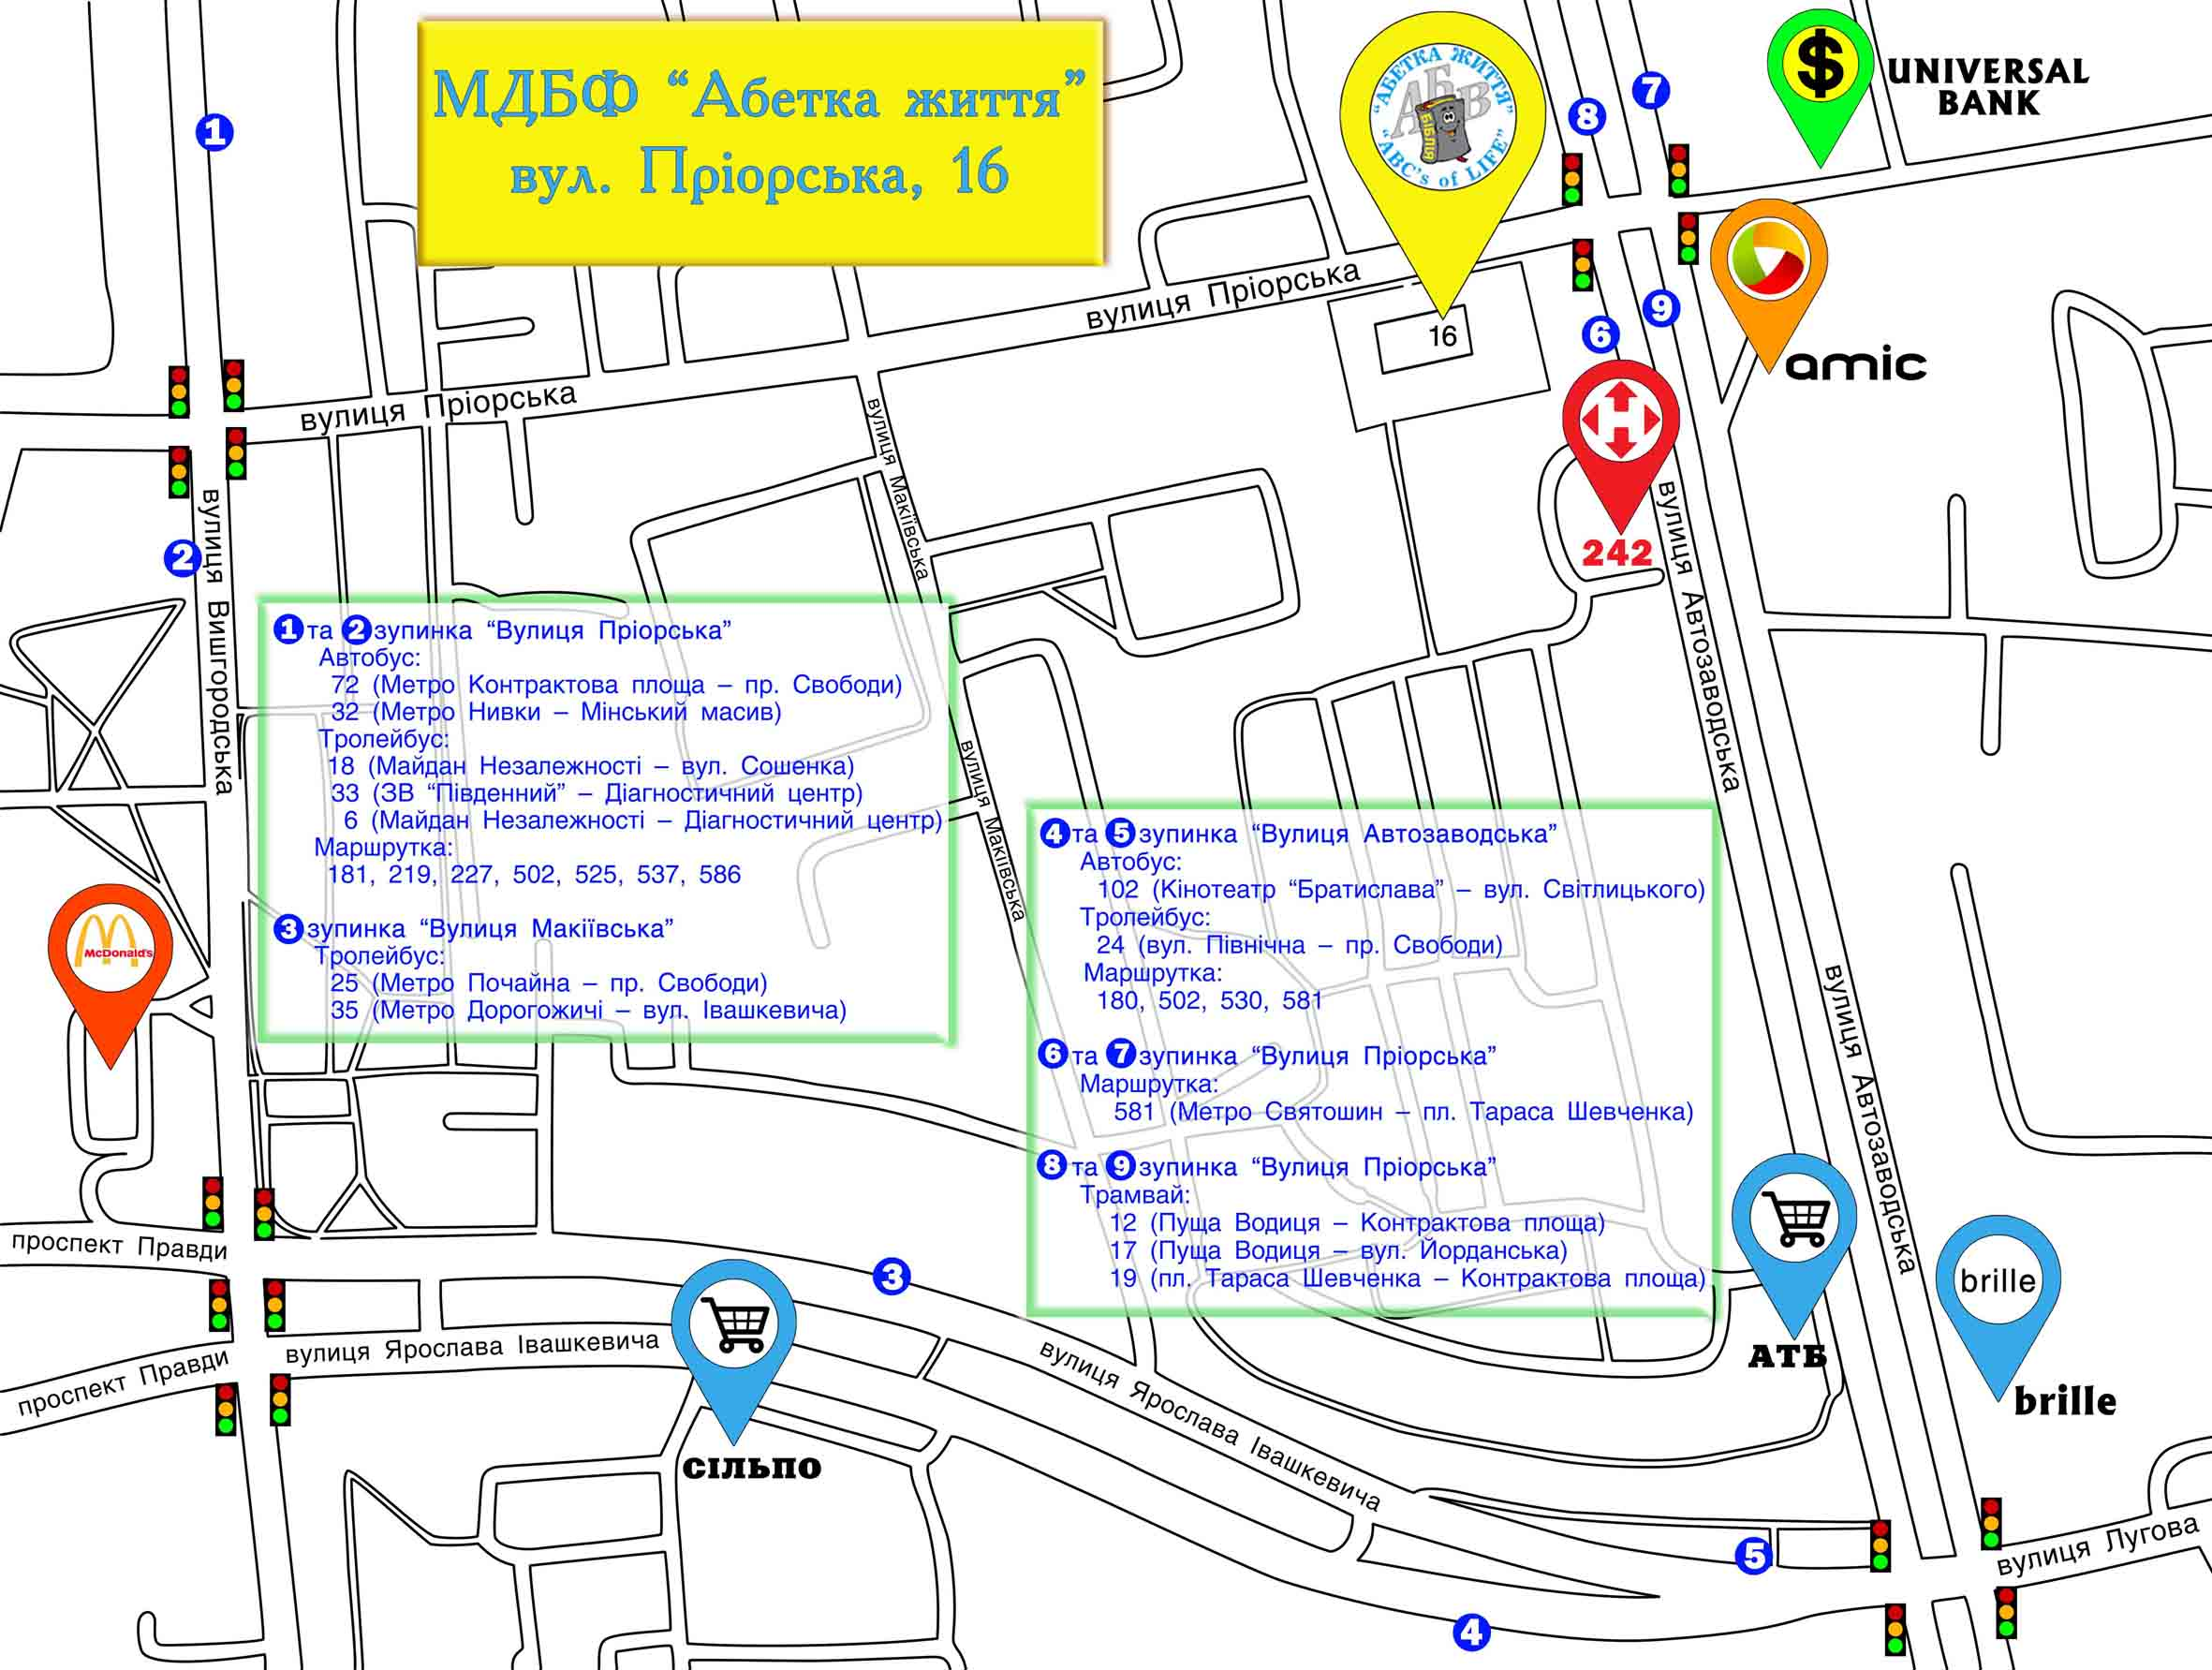 map of ABCs office